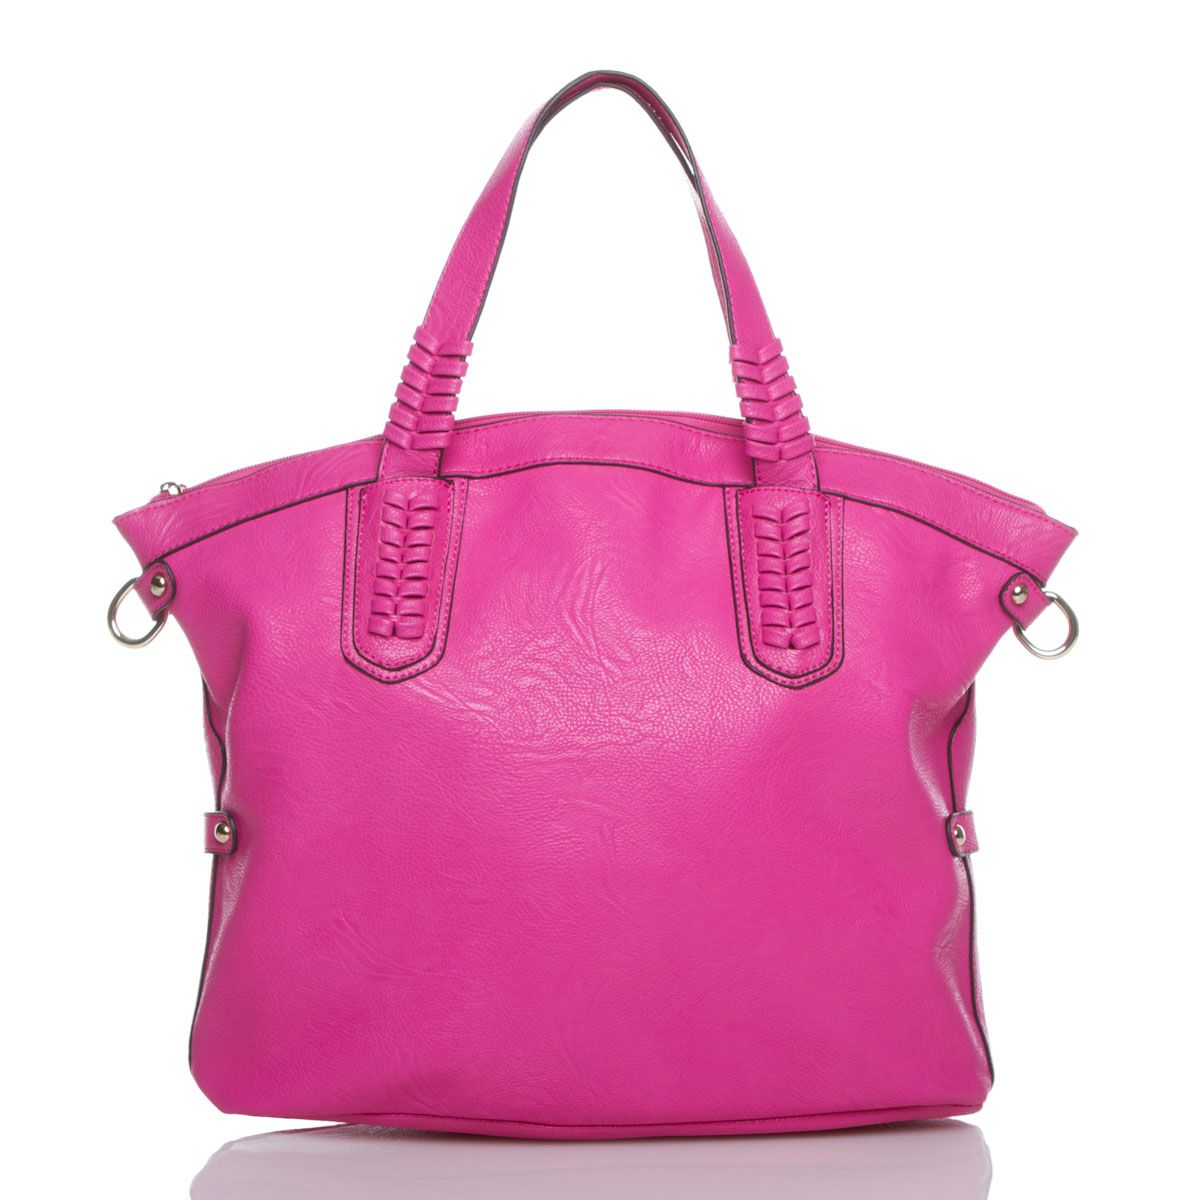 I'm thinking this would be a good bag to travel with this summer!